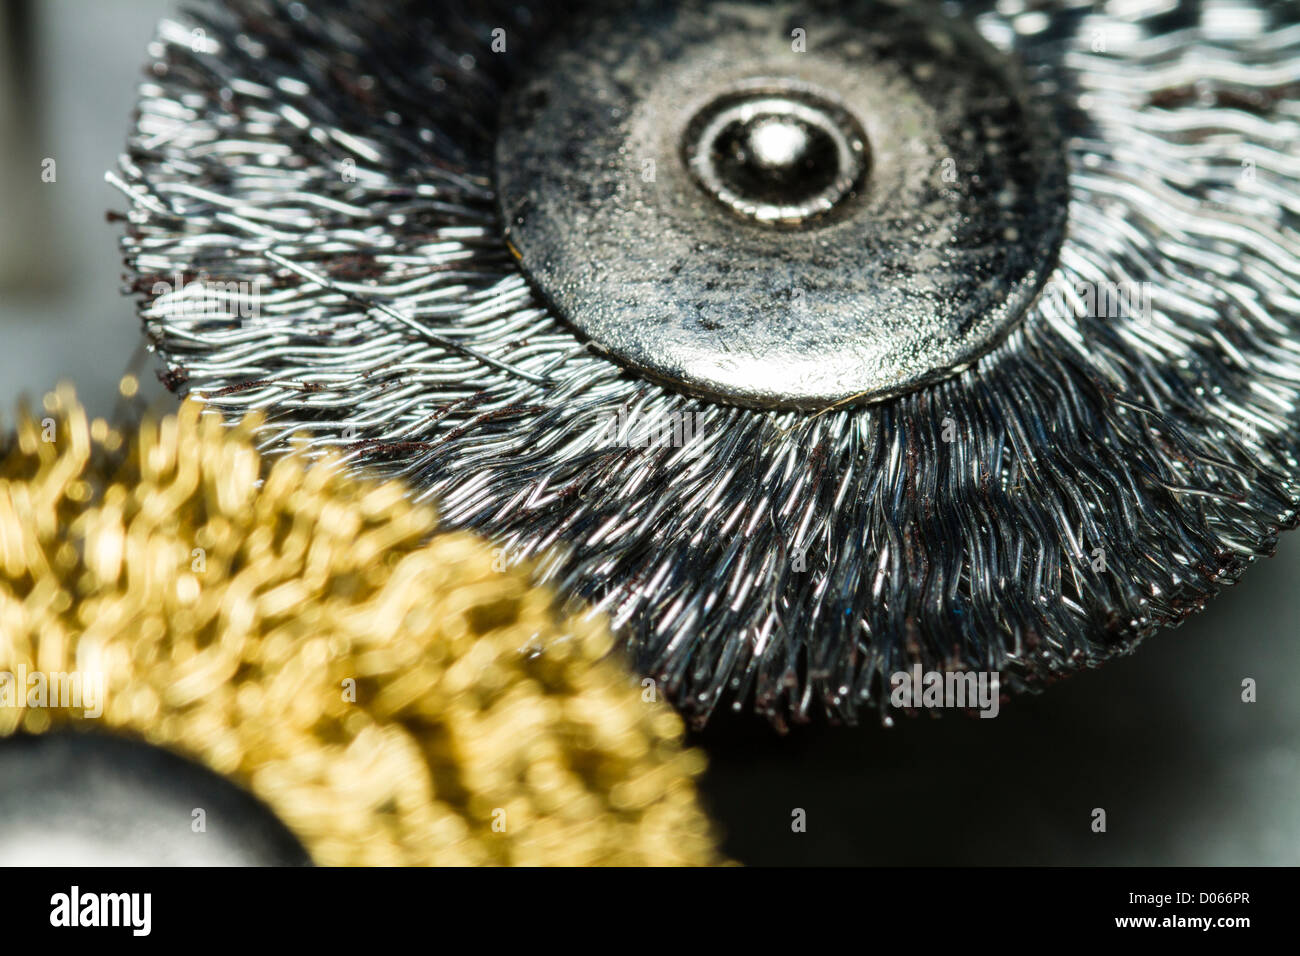 Tool Brass Stockfotos & Tool Brass Bilder - Alamy